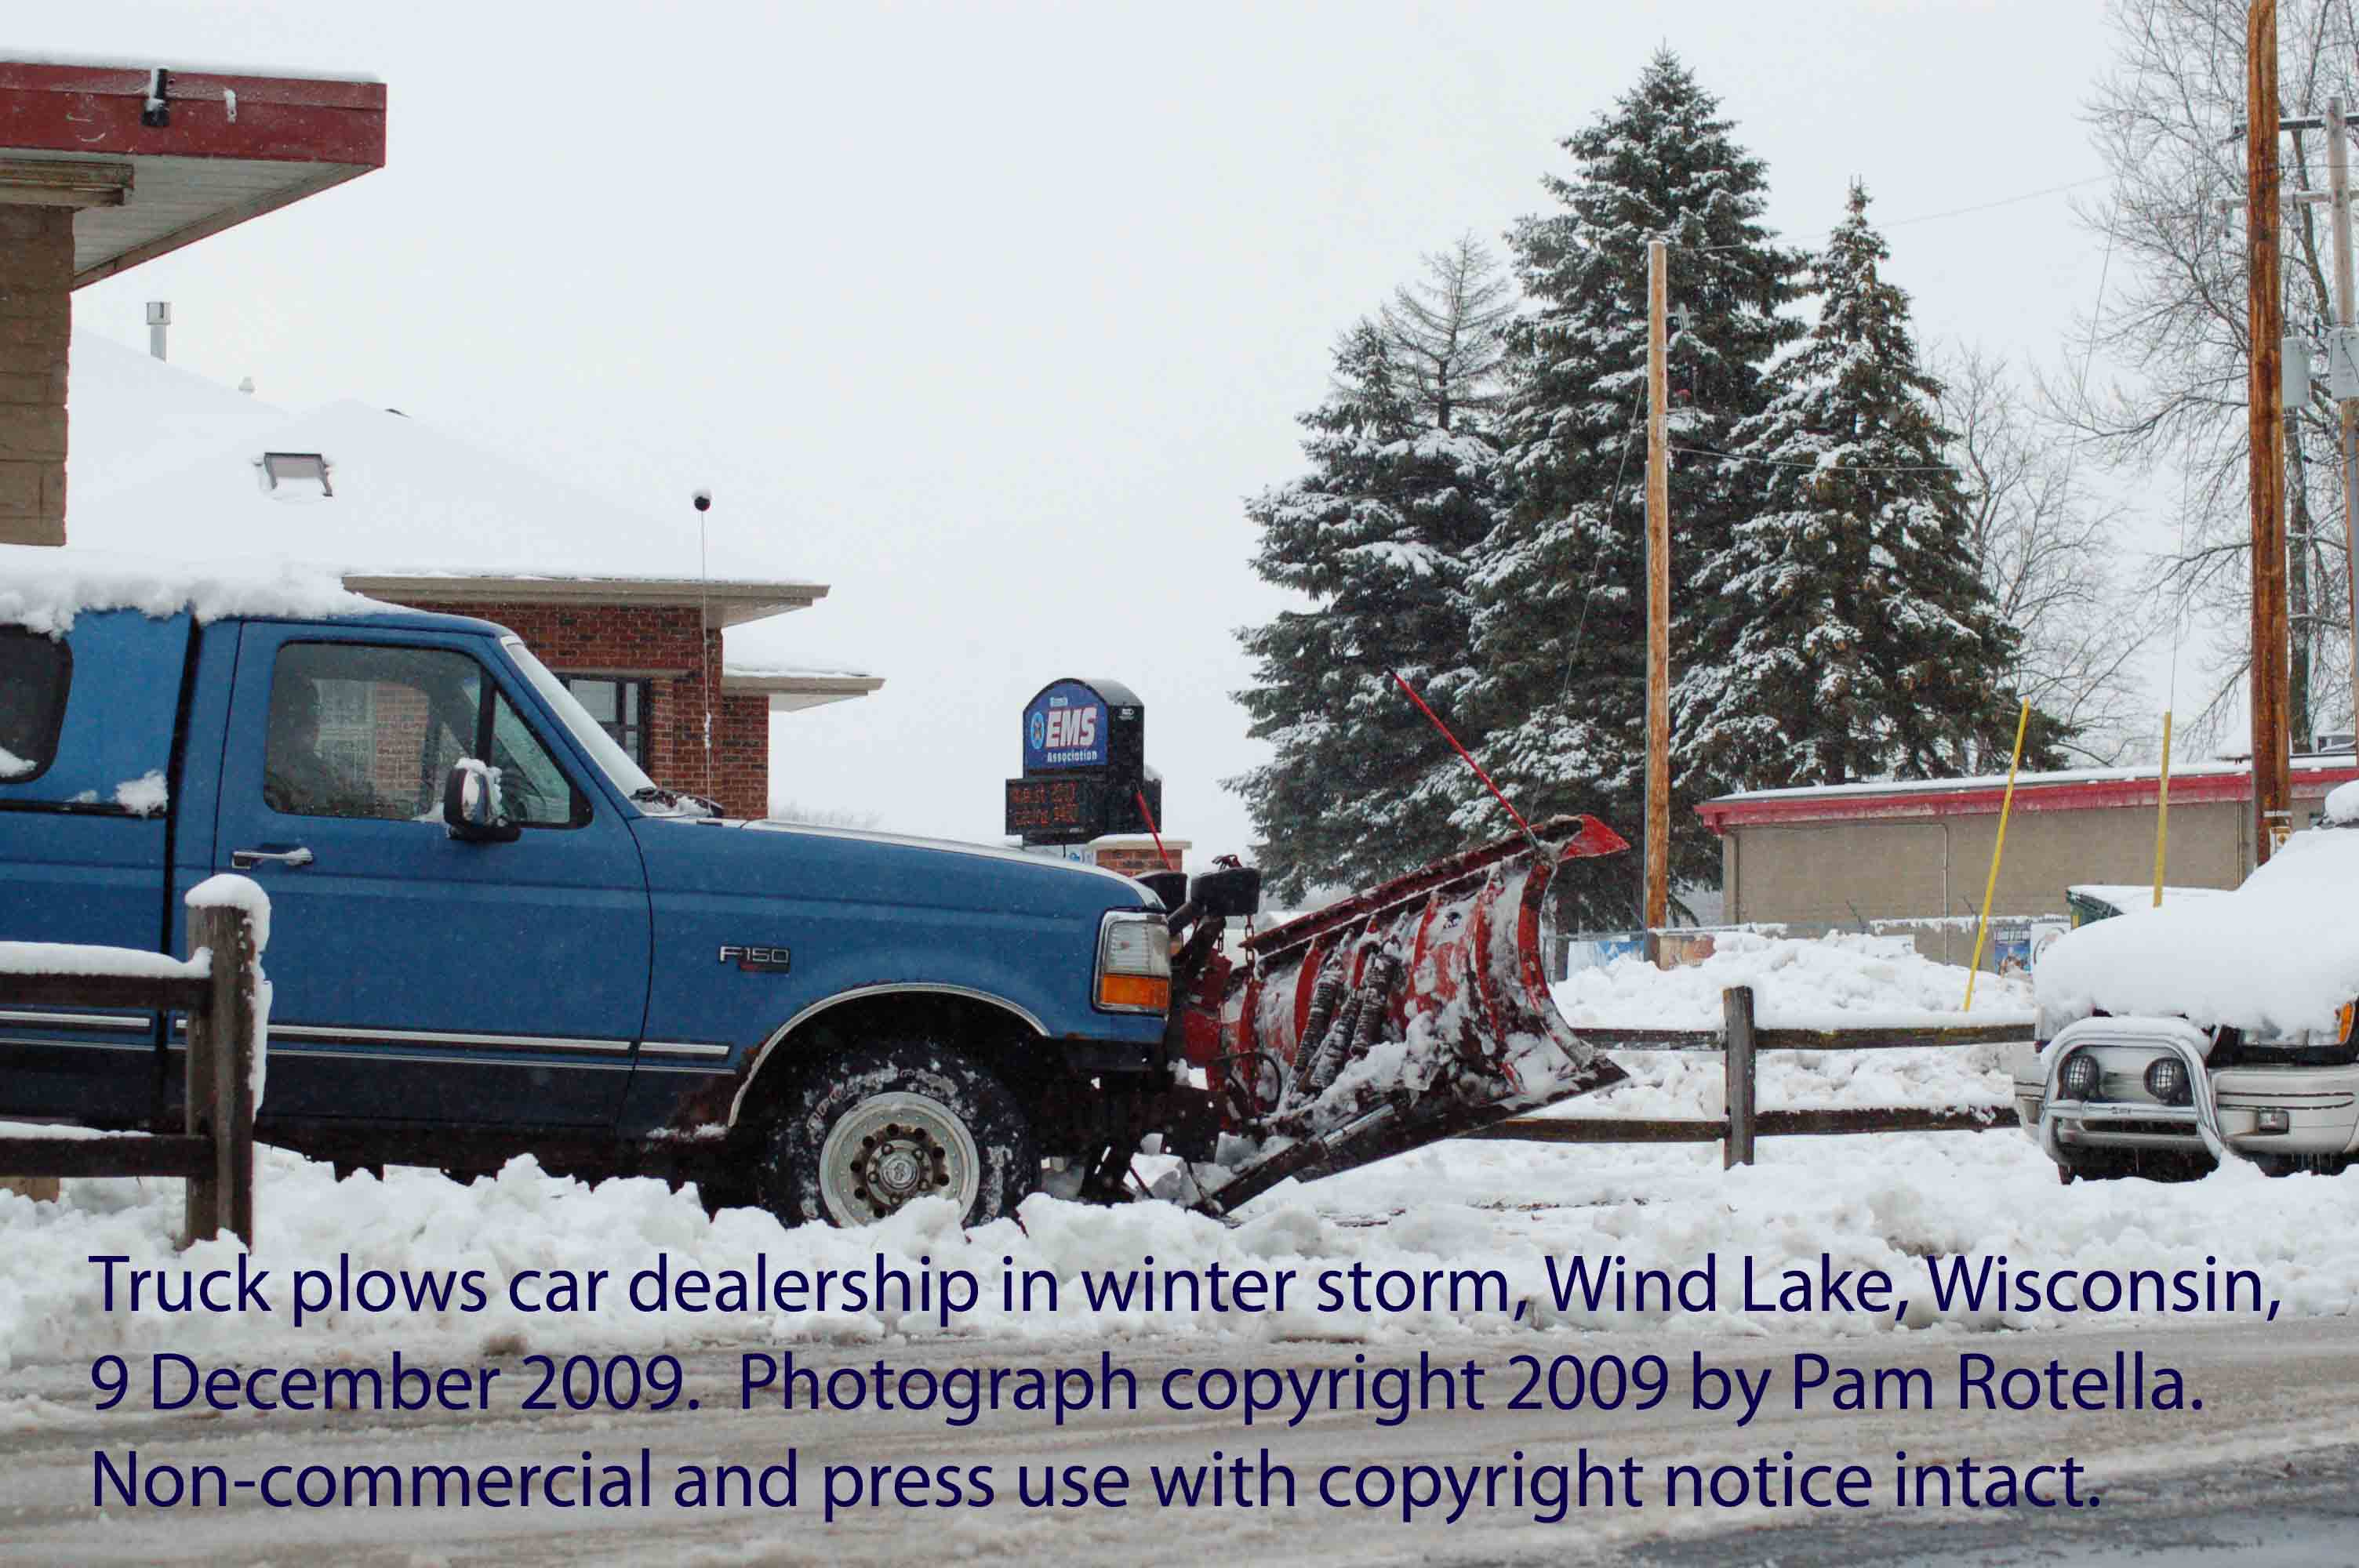 Winter storms, snow plow, Wind Lake, WI, 9 Dec 2009